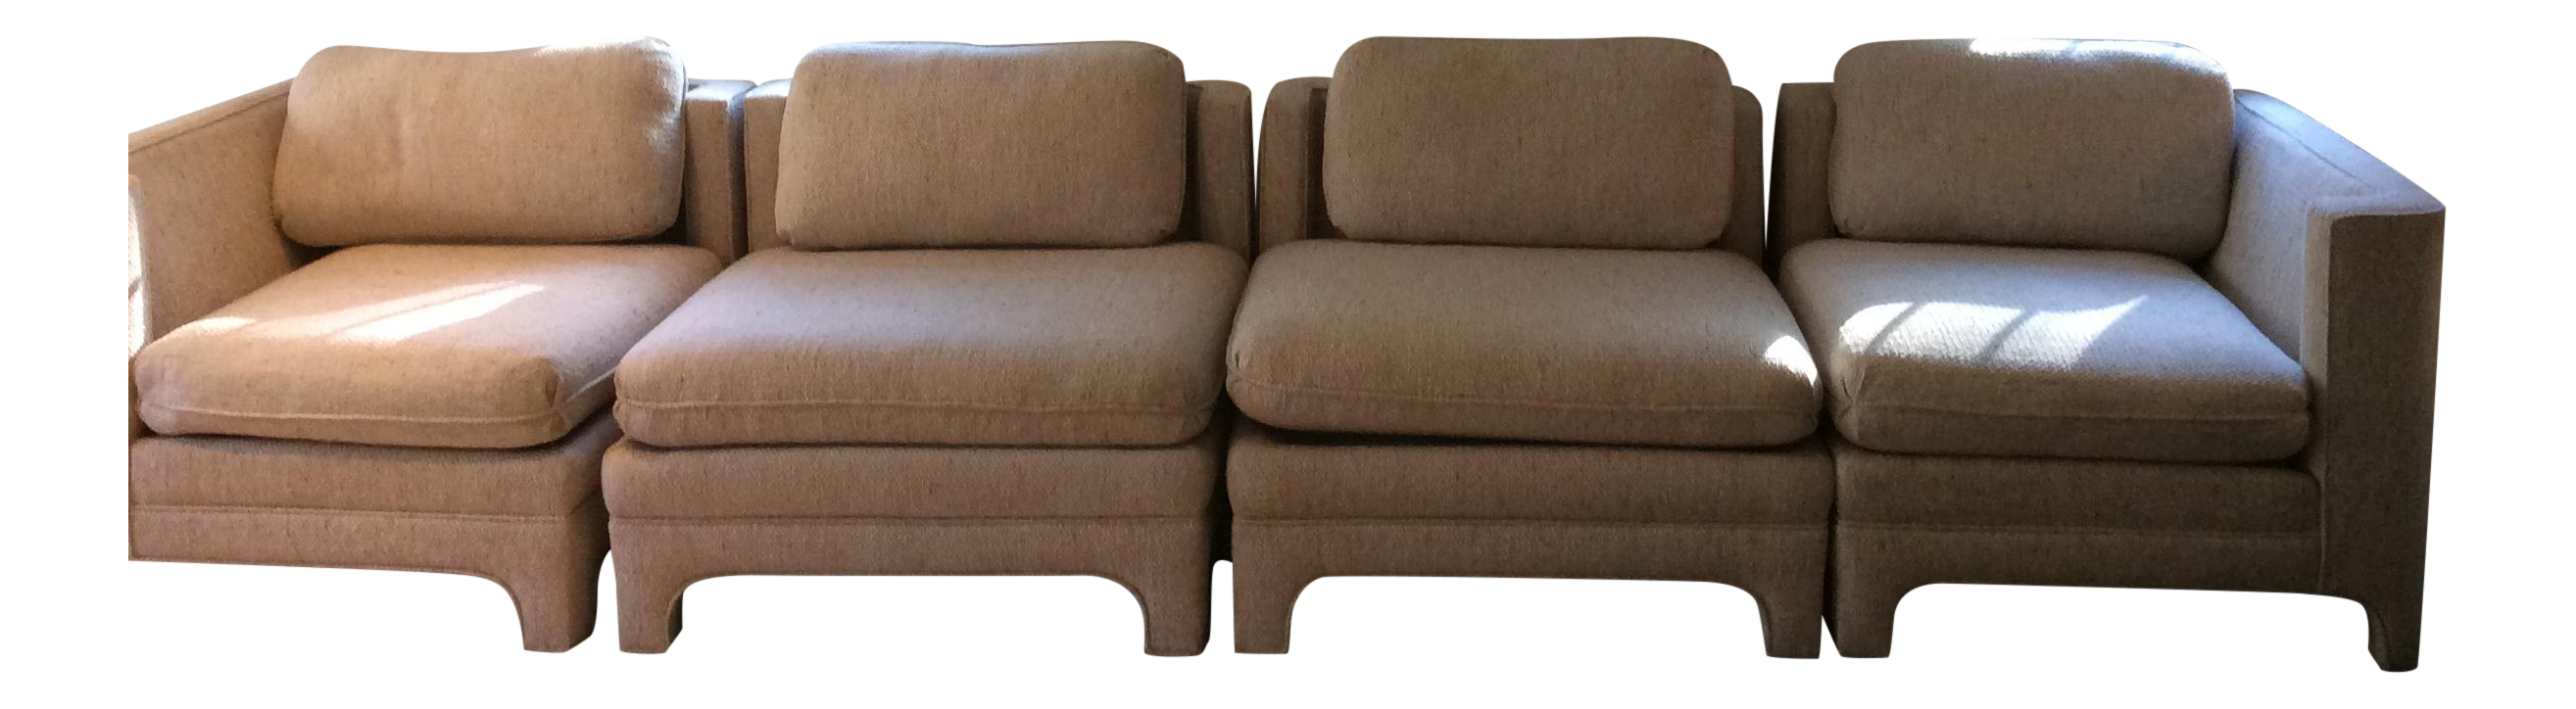 Milo Baughman Style Sectional Couch  sc 1 st  Chairish : sectional sofas cincinnati - Sectionals, Sofas & Couches